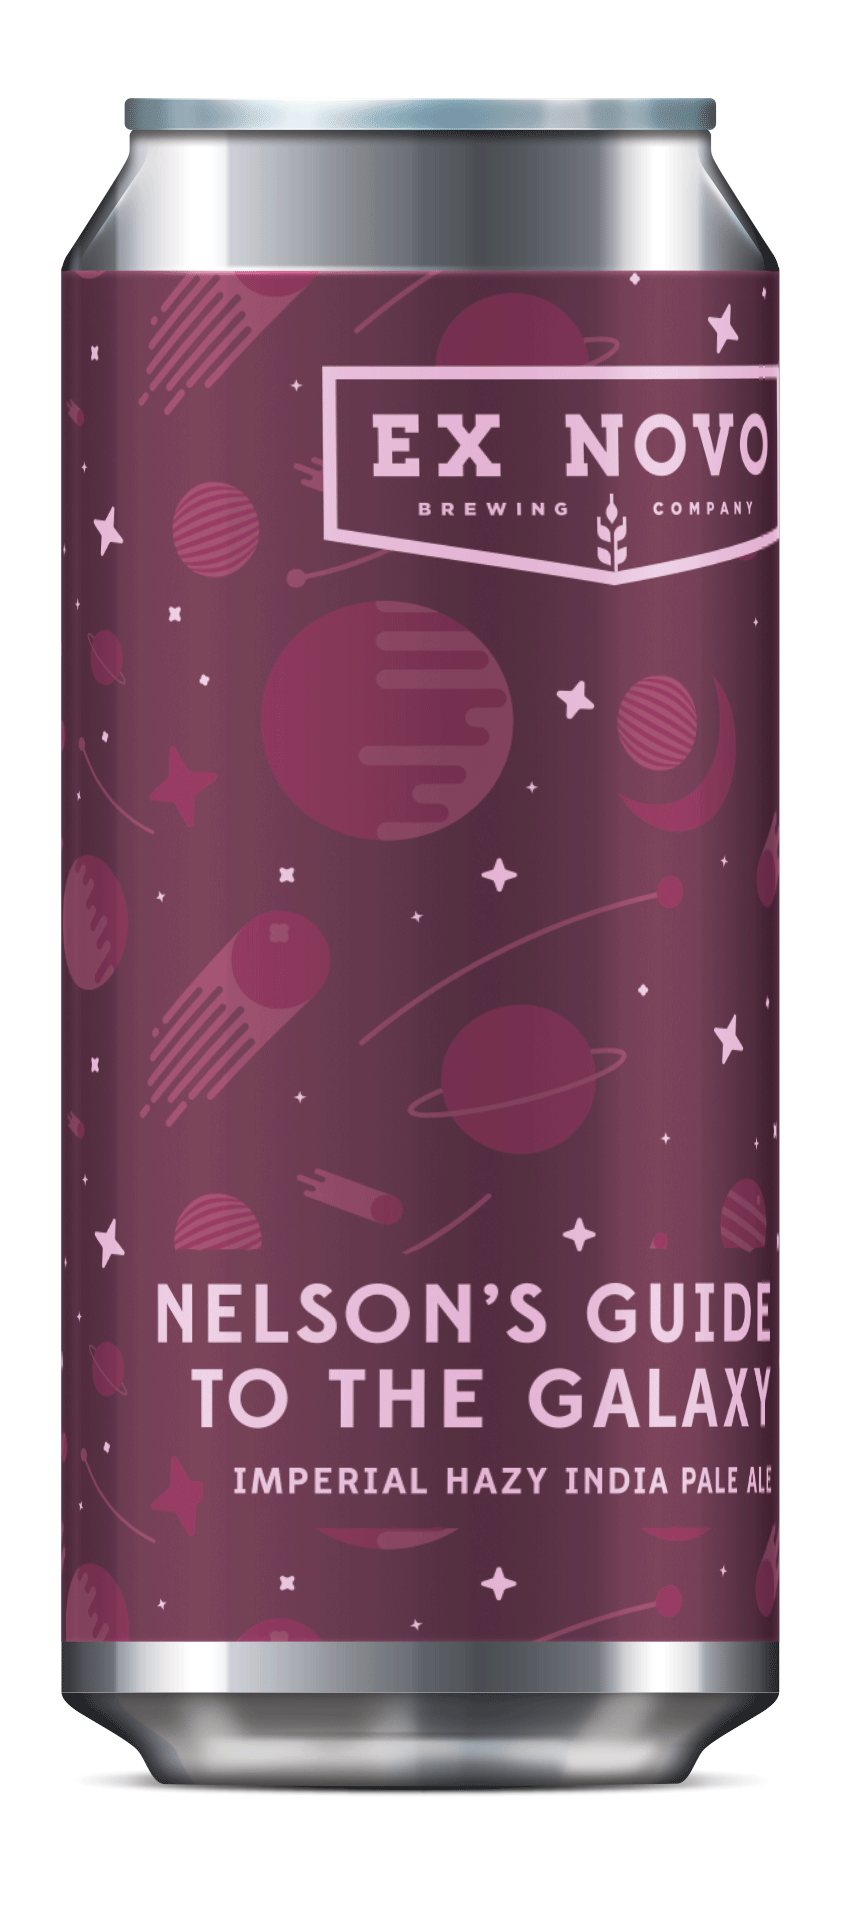 Nelson's Guide to the Galaxy